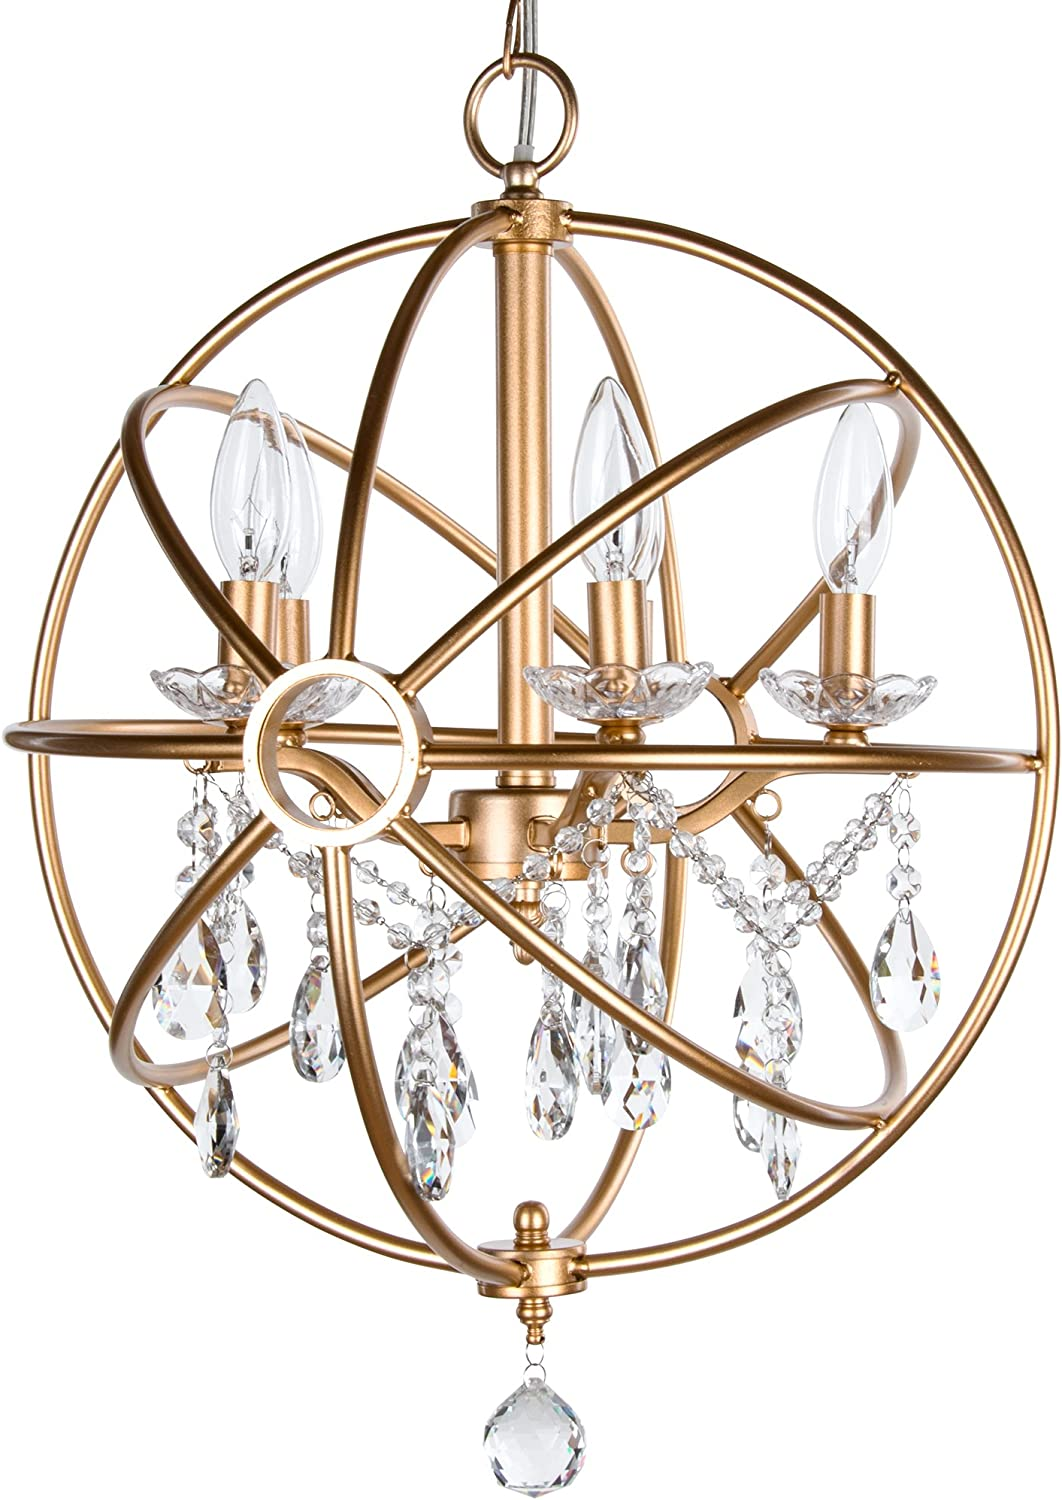 Amalfi Decor 5 Light Orb Crystal Beaded Chandelier, LED Cage Wrought Iron K9 Glass Pendant Light Fixture Contemporary Nursery Kids Room Dimmable Plug in Hanging Ceiling Lamp, Gold